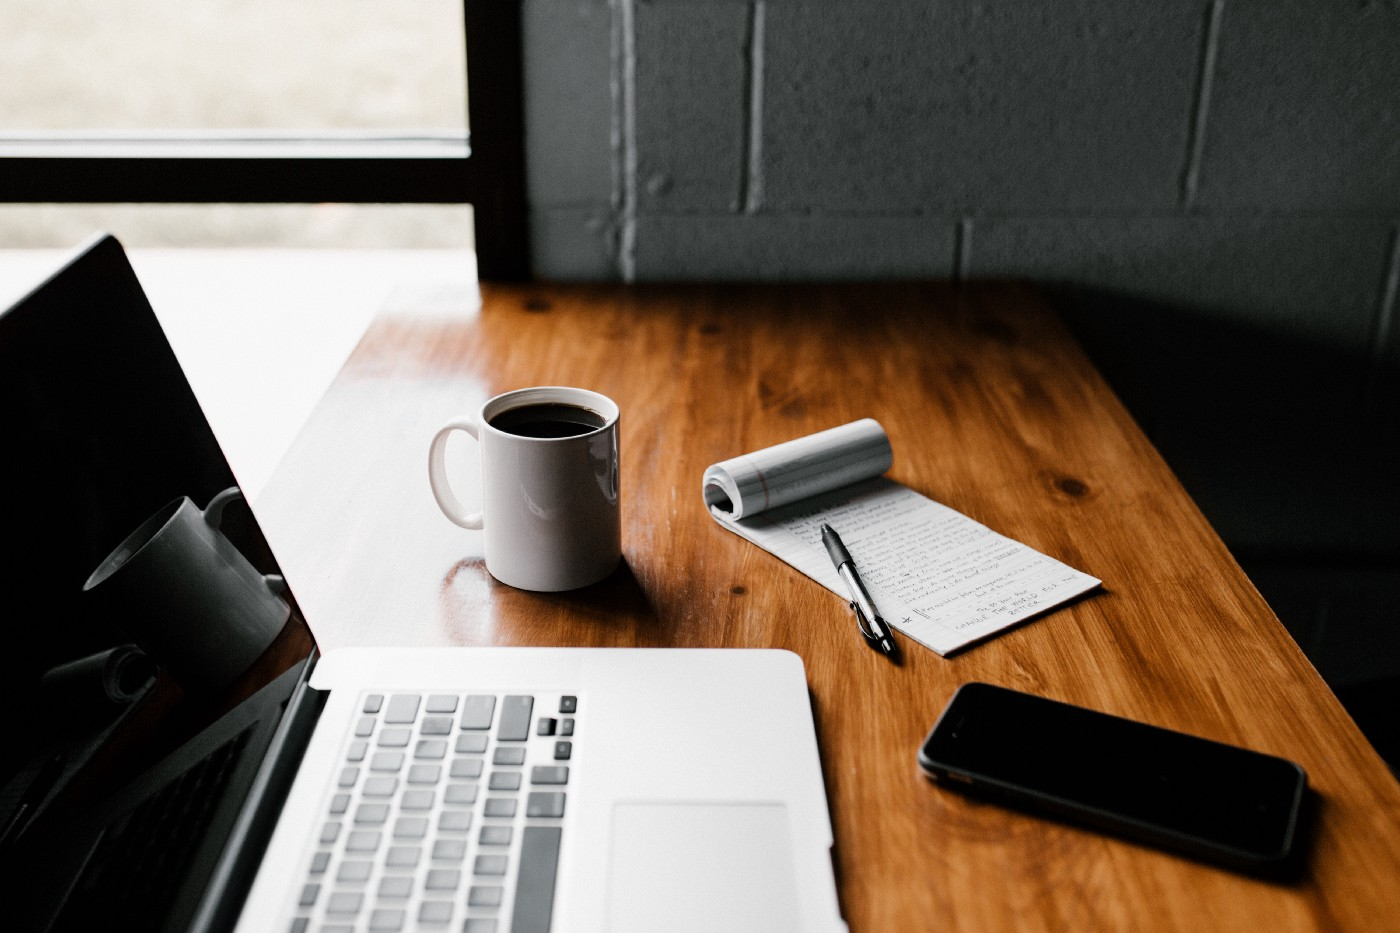 A clean hardwood workspace features an open laptop, coffee, phone, and to-do list with a pen resting neatly beside it.